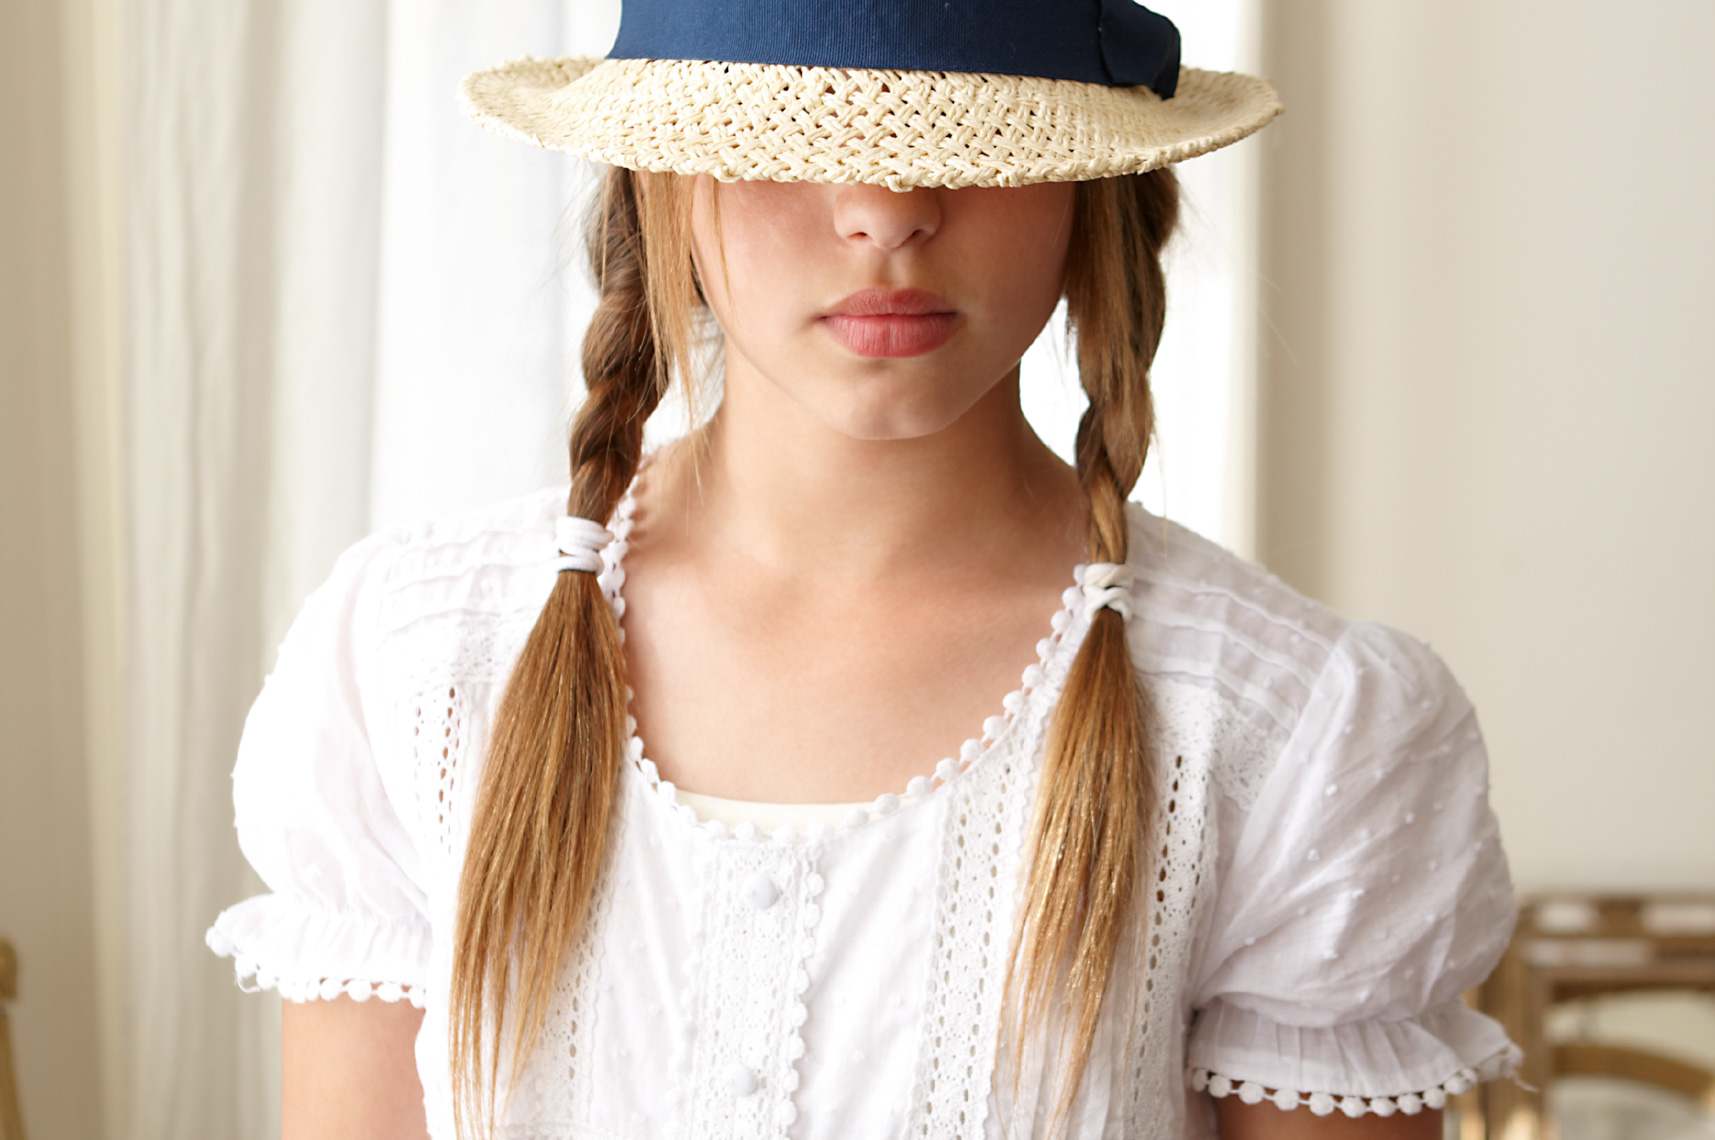 Found girl with pigtails wearing white blouse and a hat tipped down over her eyes San Francisco lifestyle photographer